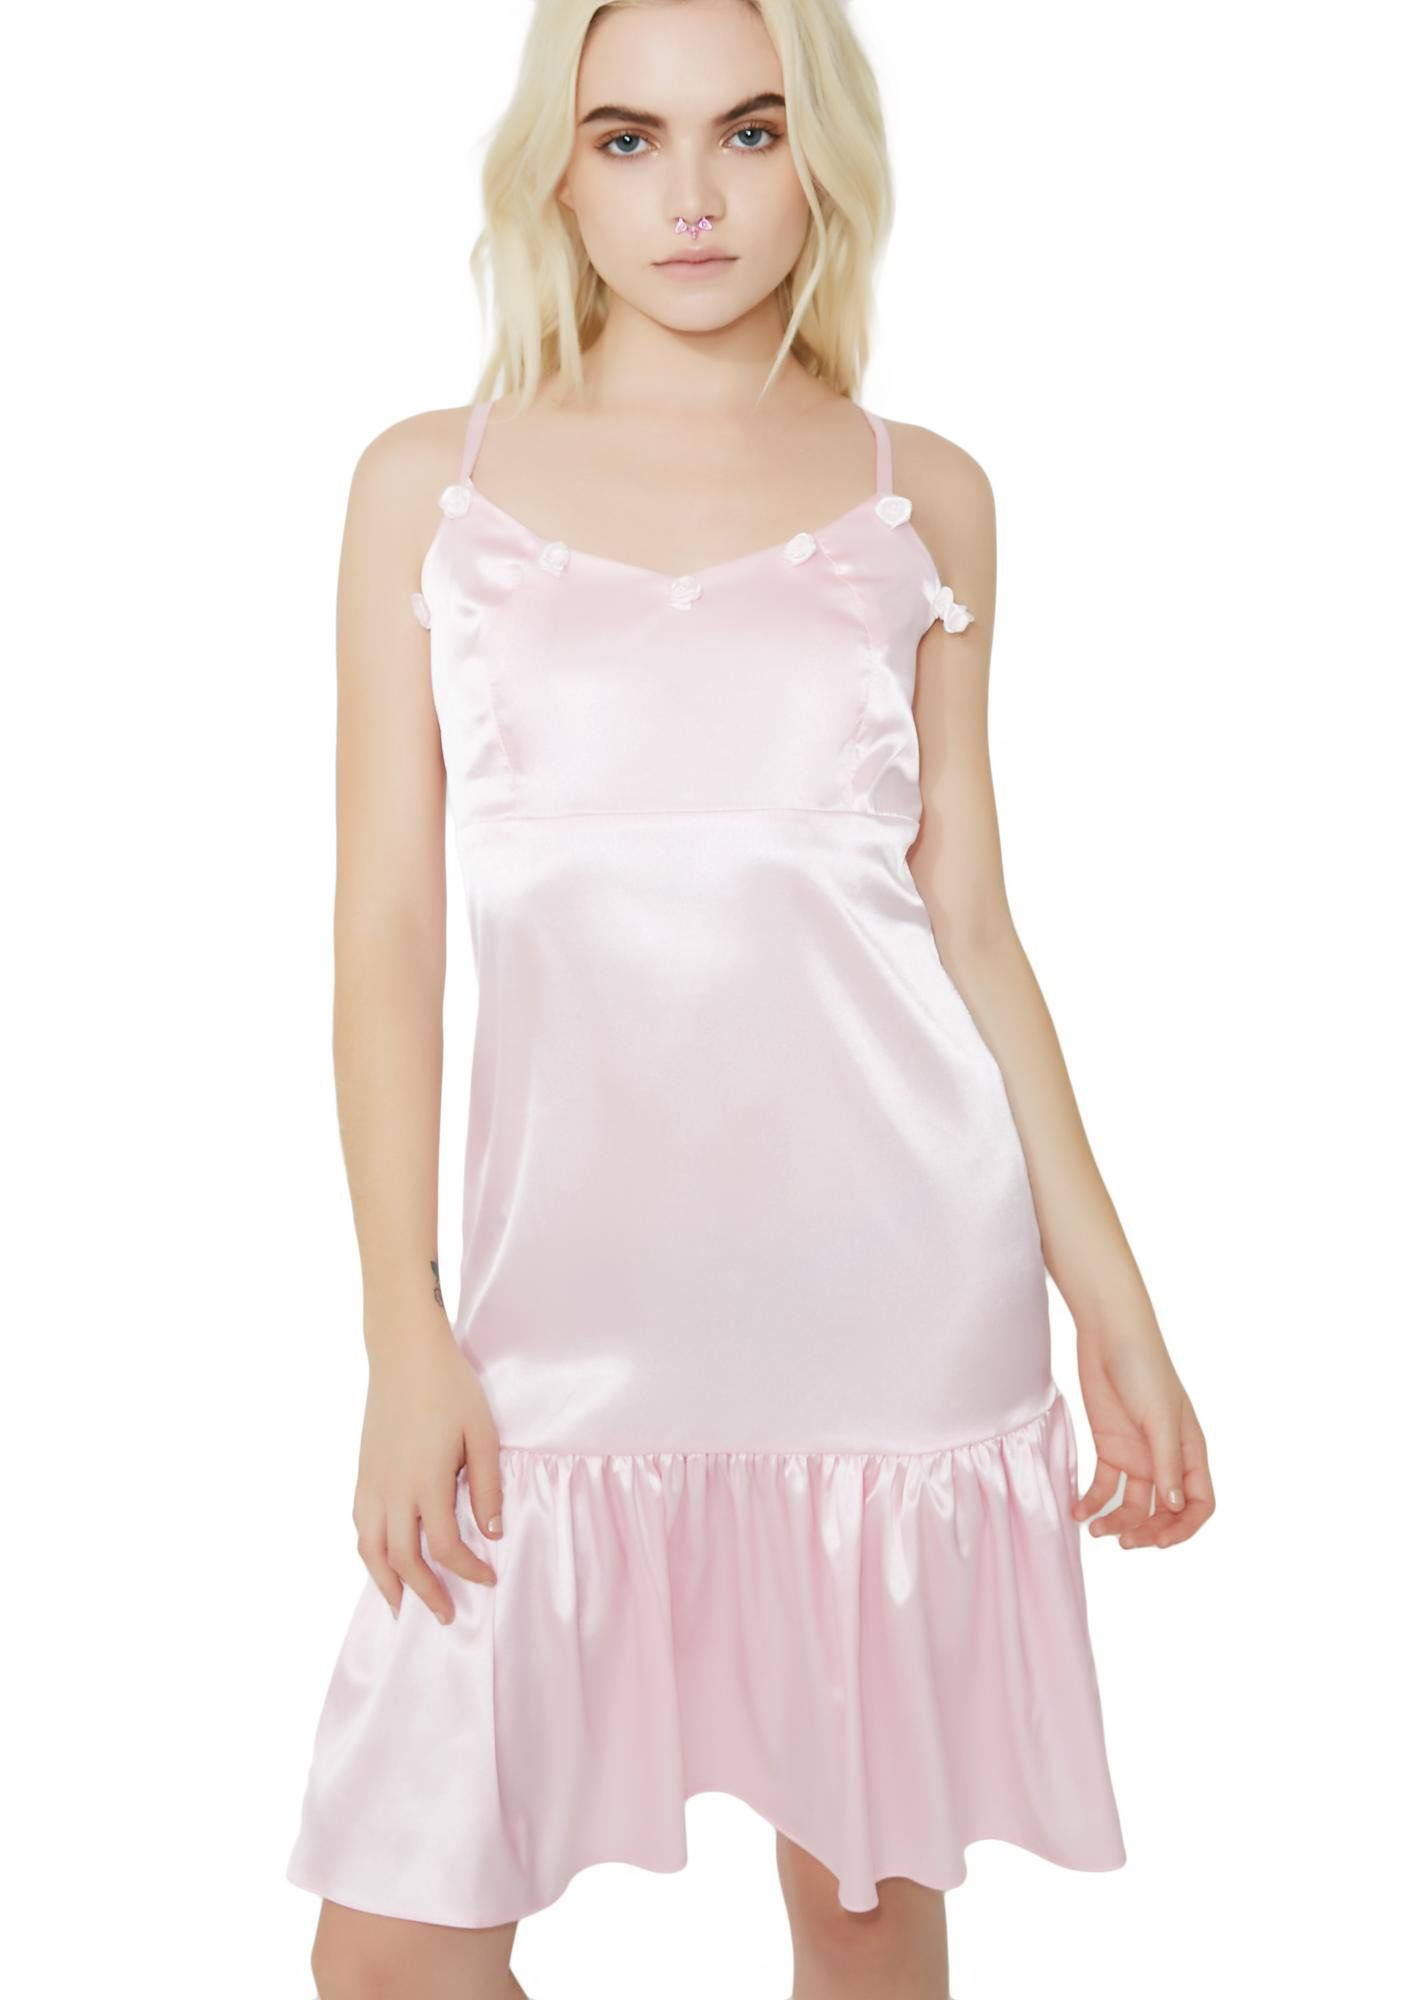 Rose satin mini dress